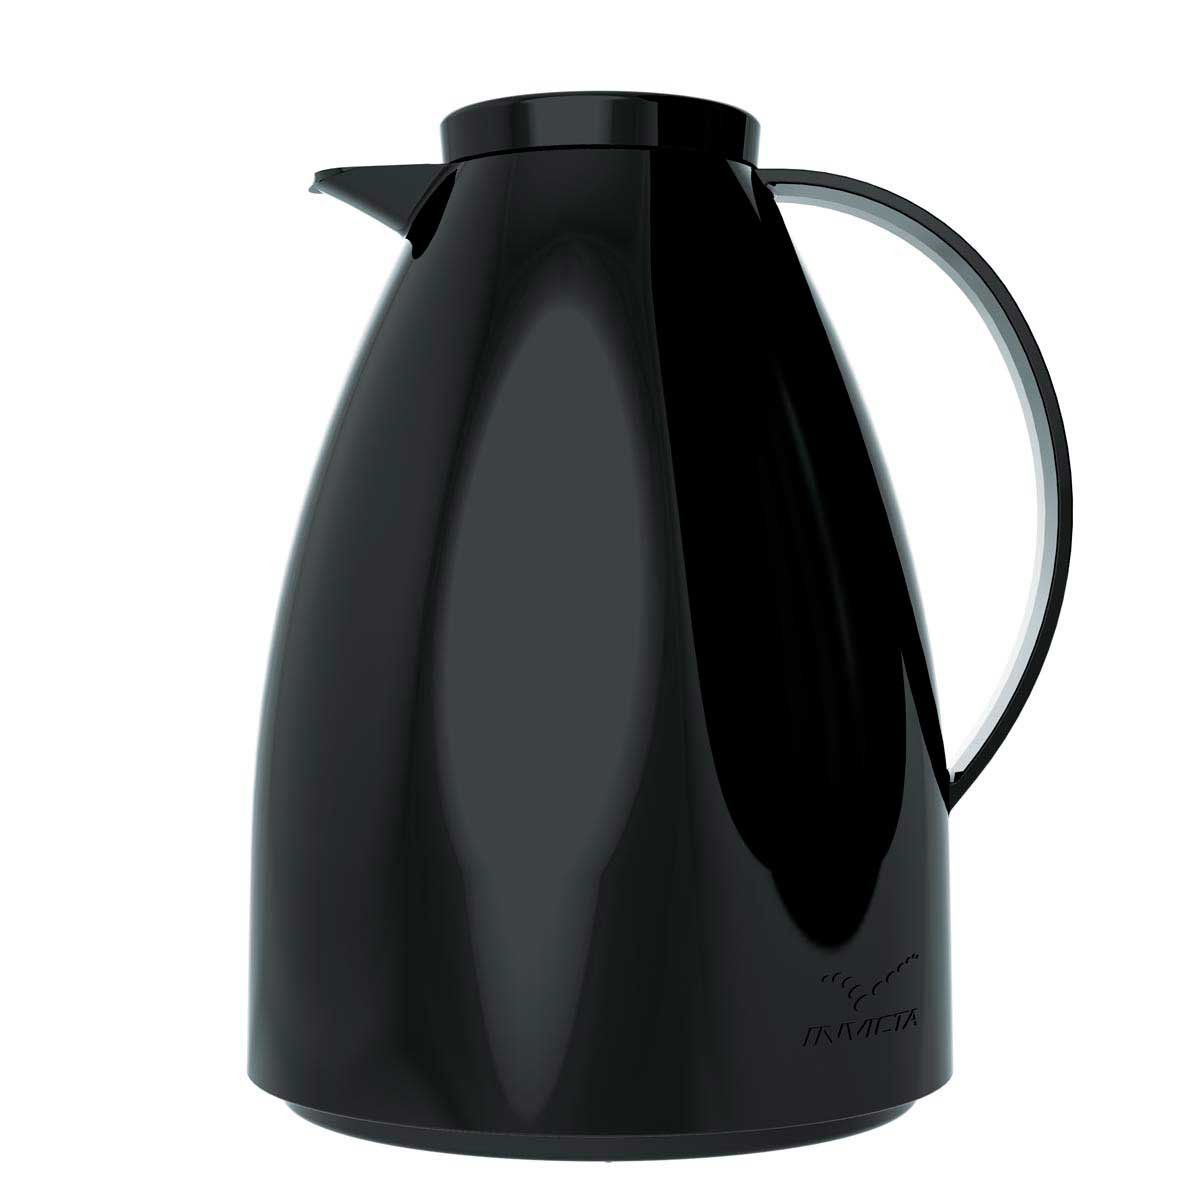 Bule Viena 750ml Preto Invicta